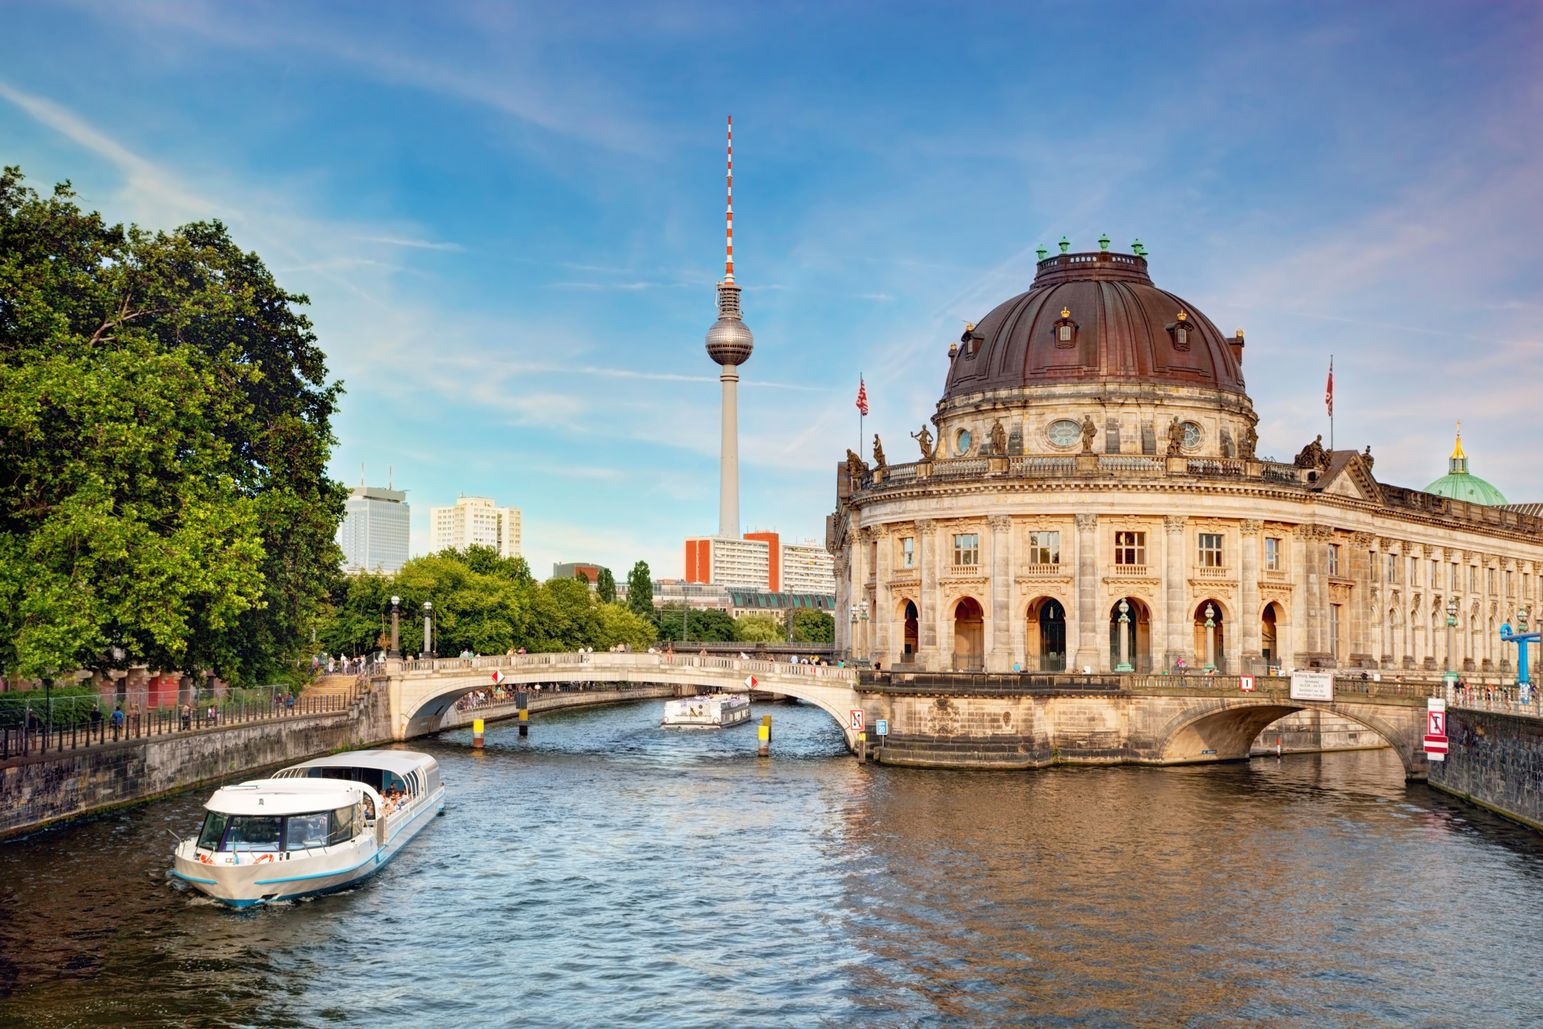 Cruise along the River Spree in Berlin